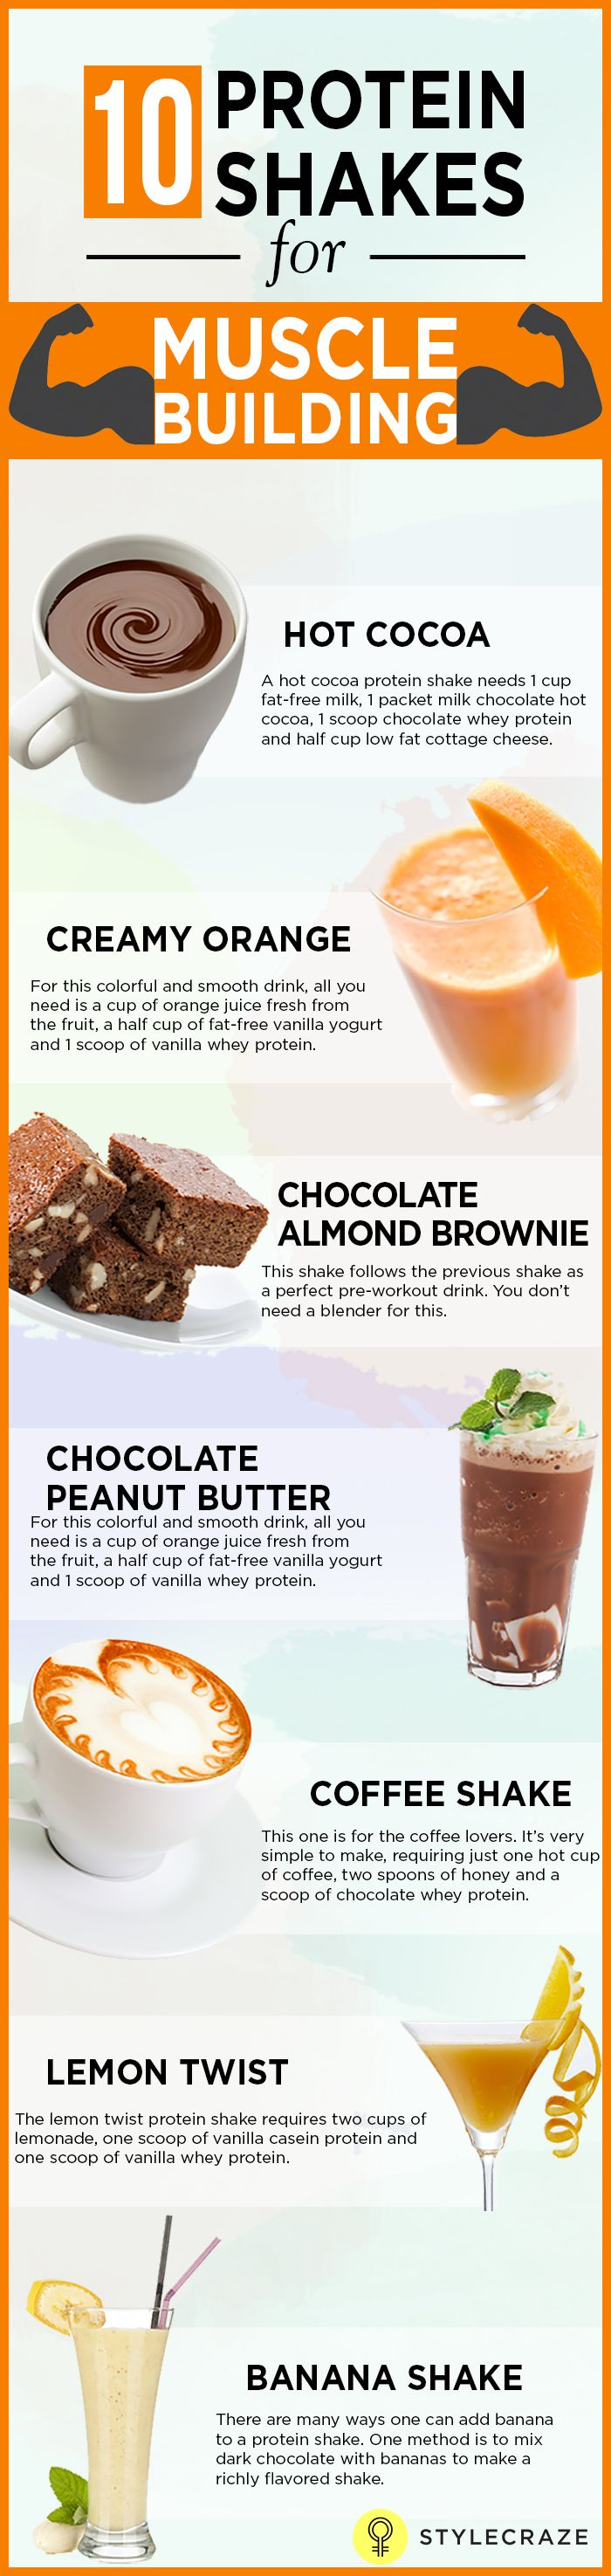 Are you an athlete? Or are you a bodybuilder? If building muscle is a major focus in your life right now, then protein shakes are a vital part of it too. A list of the best protein shakes around you would certainly help you with your muscle building goals. This post talks exclusively about those! Would you like to know more? Keep reading!     #ProteinShakeRecipes